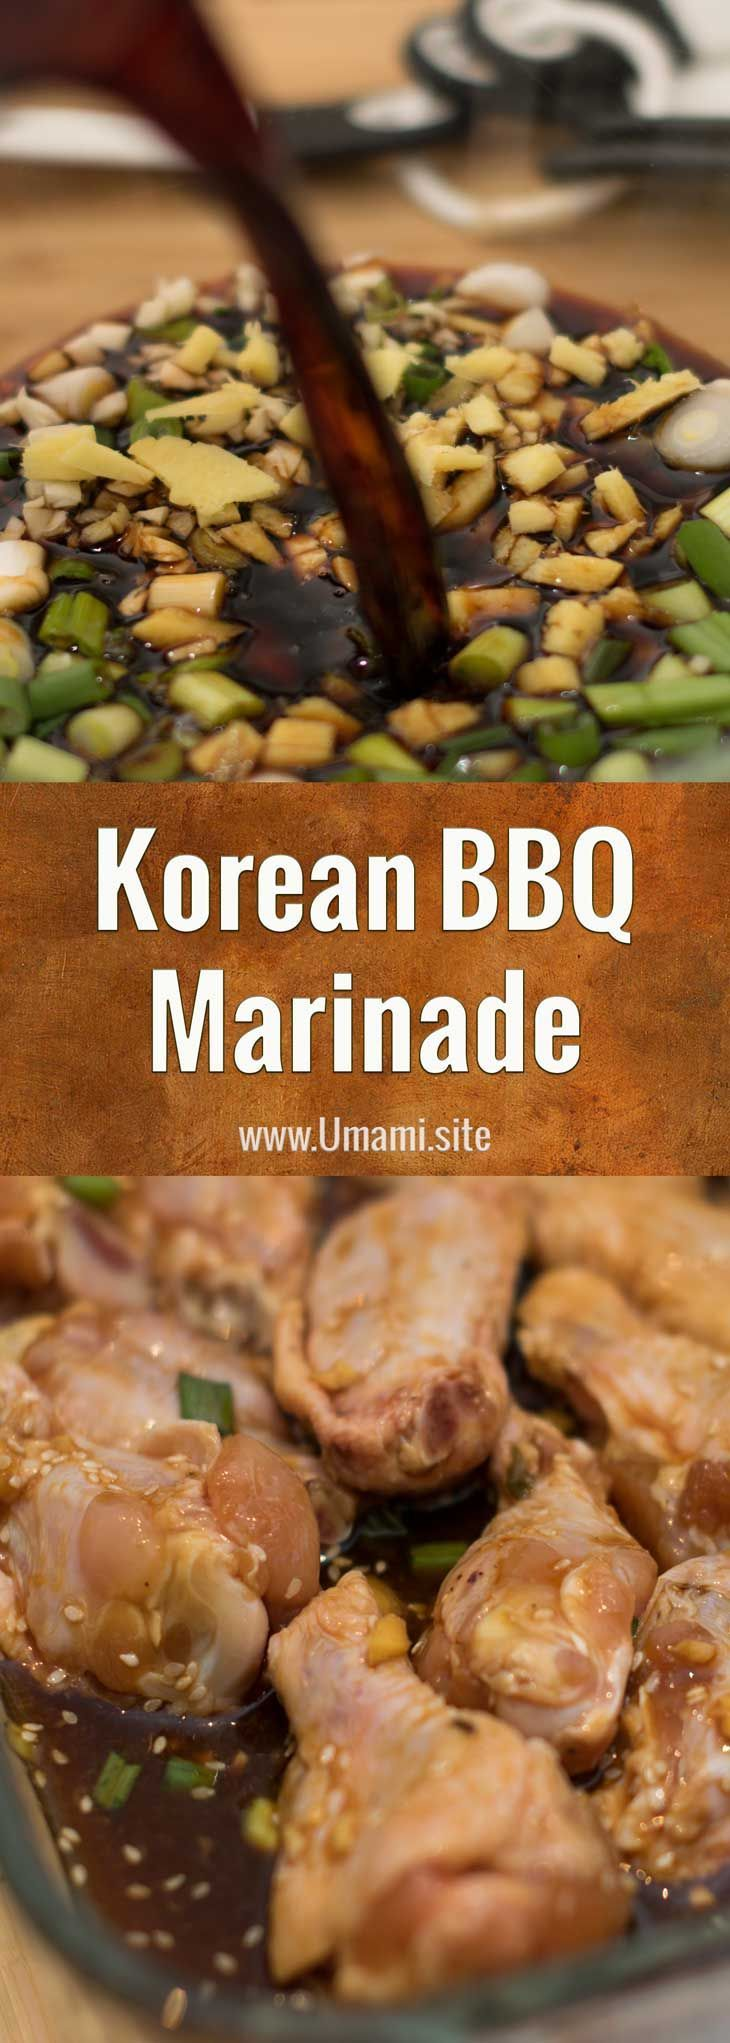 Korean BBQ Marinade -  Our take on a traditional Korean BBQ marinade uses and green onions to infus